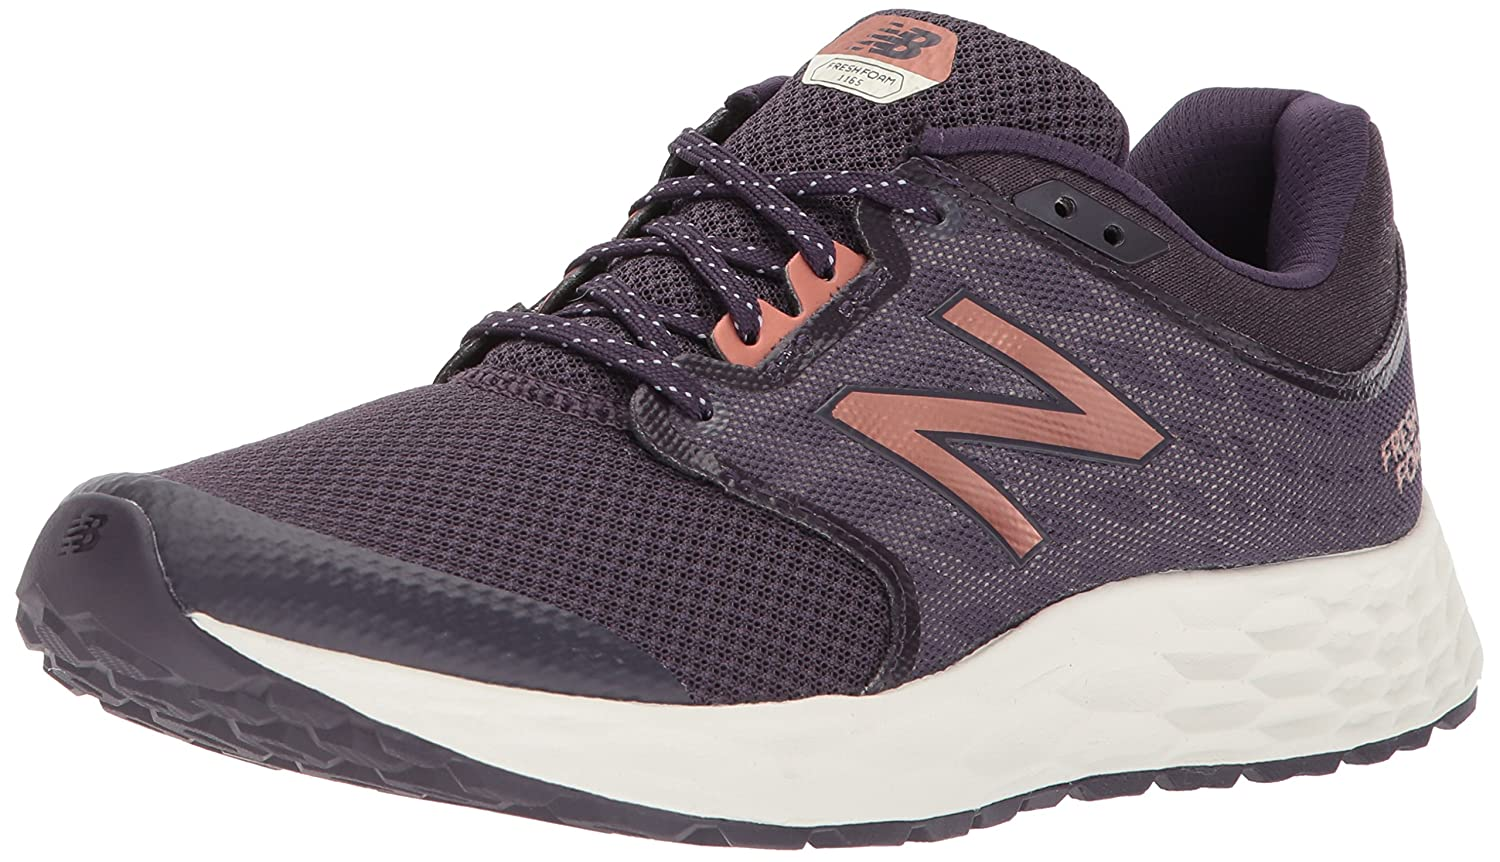 New Balance Women's 1165v1 Fresh Foam Walking Shoe B06XXCQS2H 12 D US|Purple